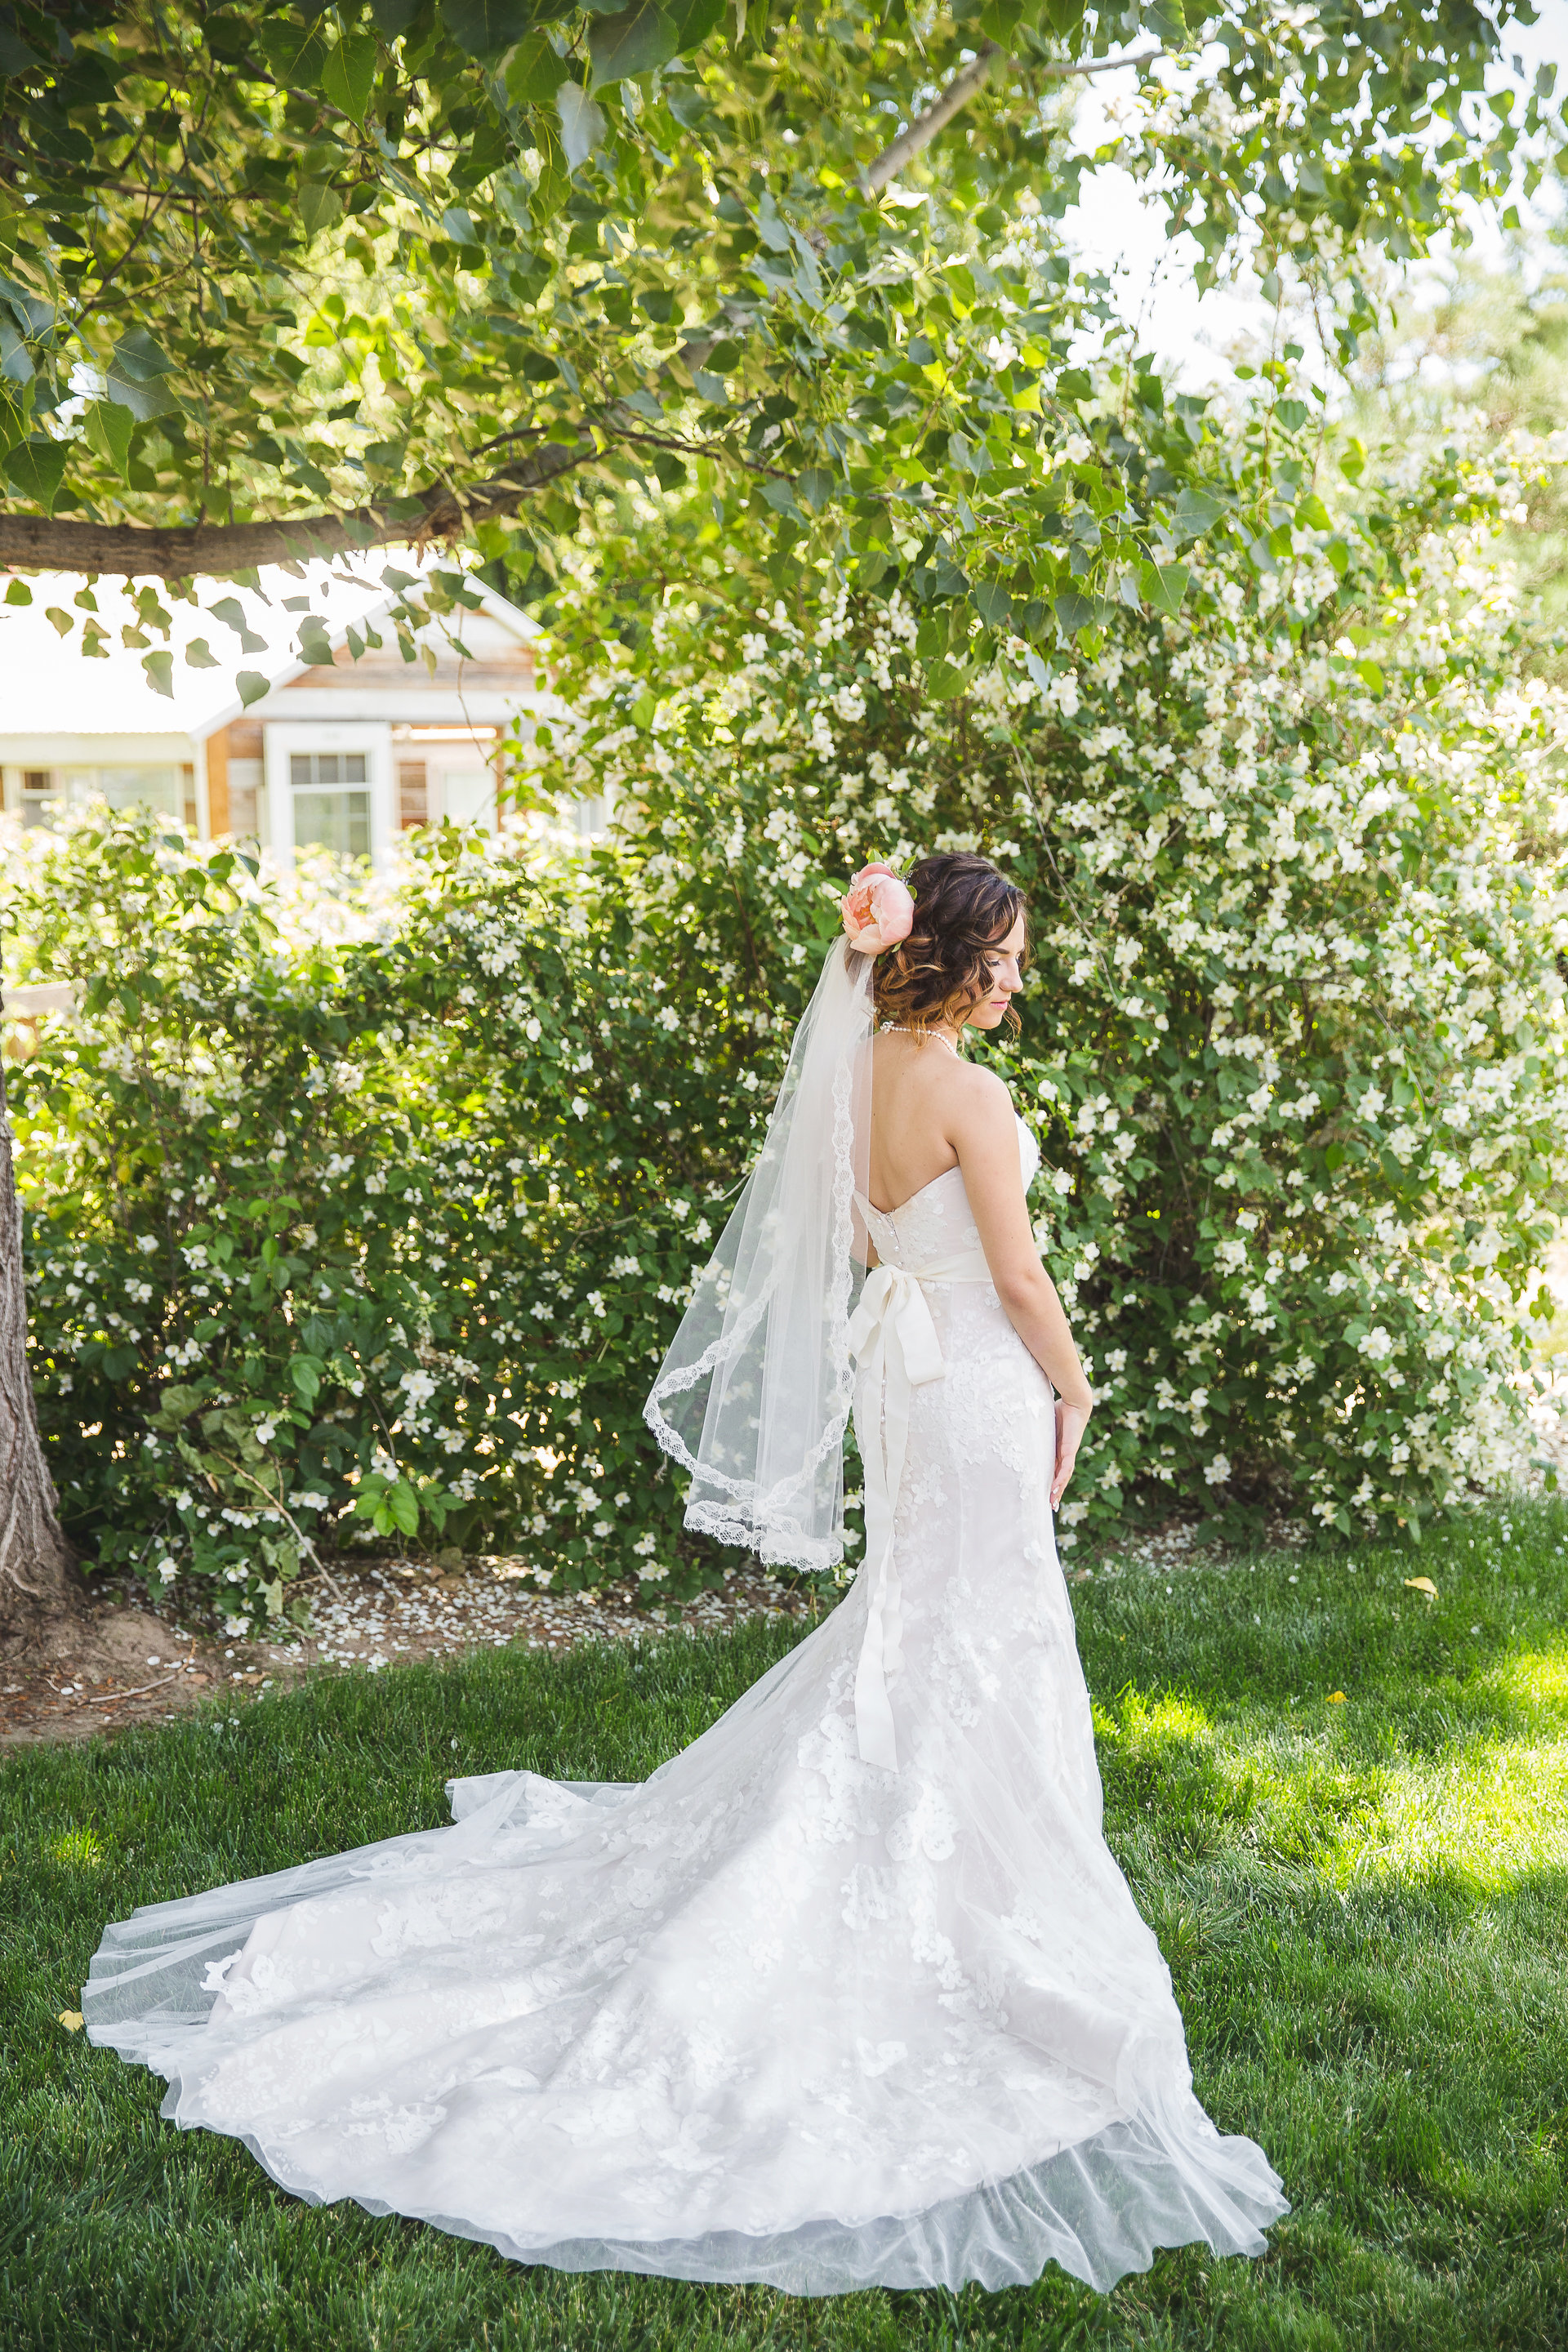 Makayla and Mike French Garden Wedding, Ira and Lucy Wedding Coordination and Design, Let It Shine Photography